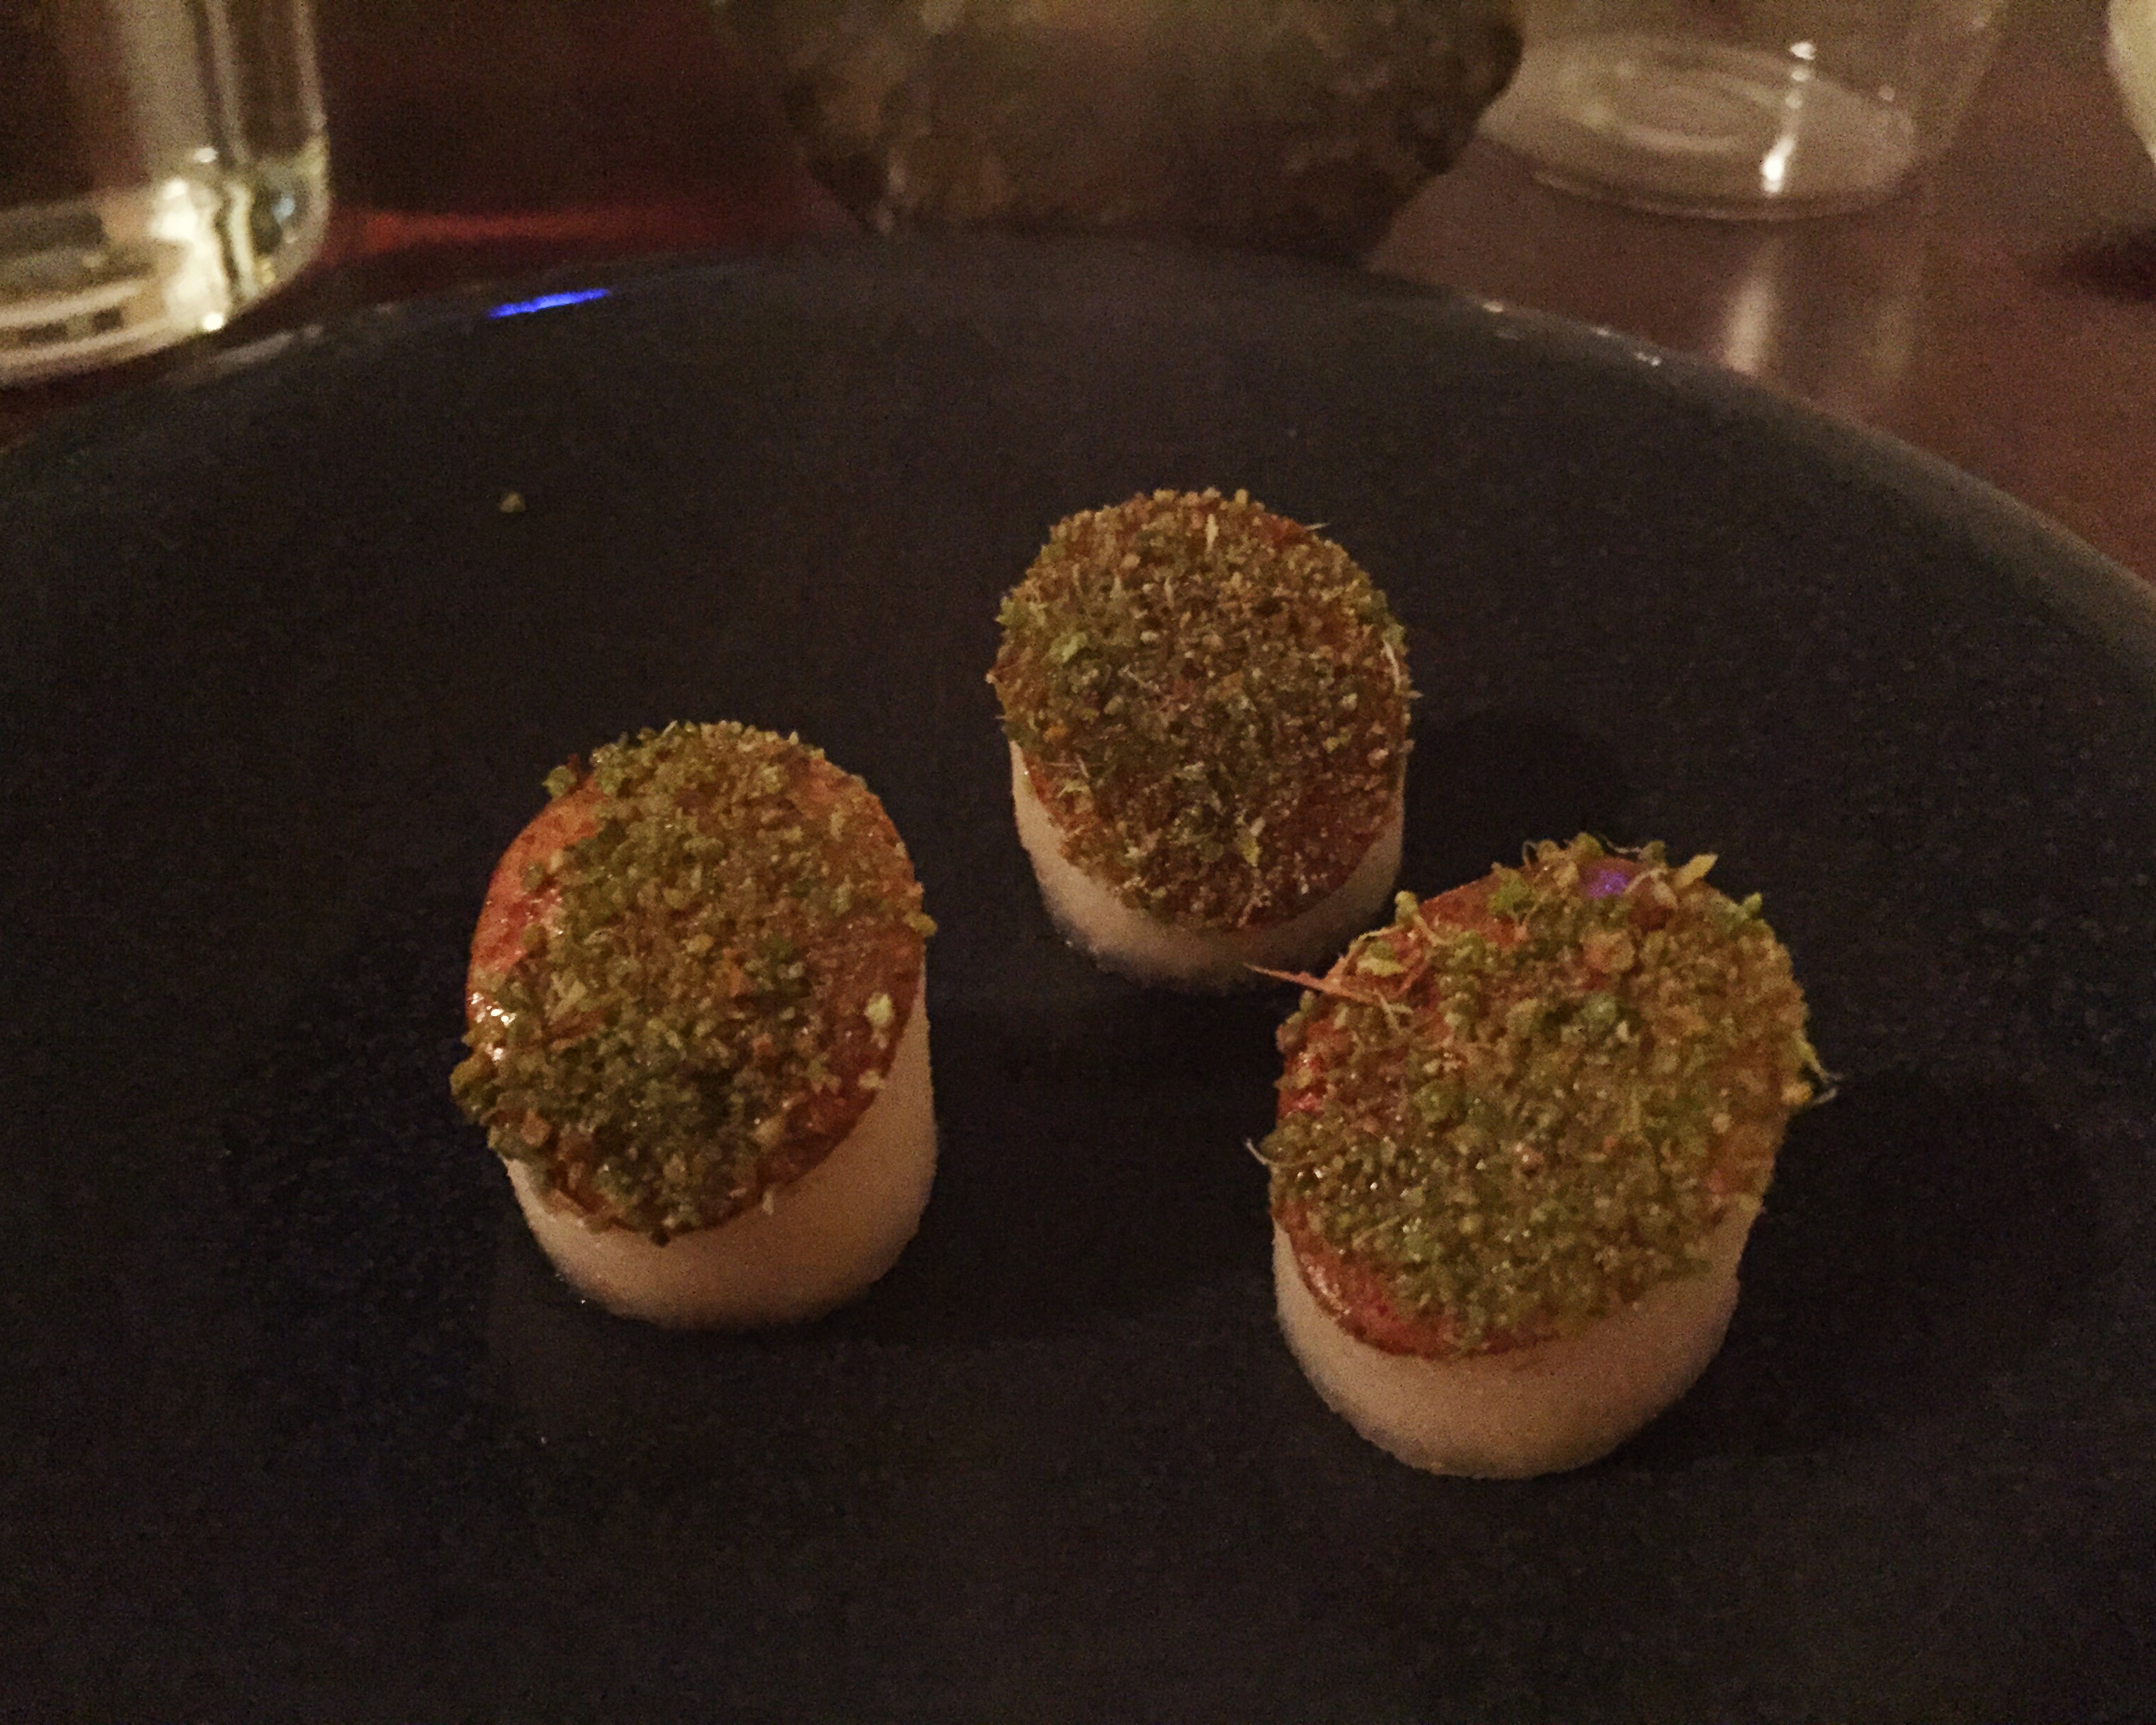 Take root is michelin worthy gab and gobble for Fish whose eggs are used for caviar